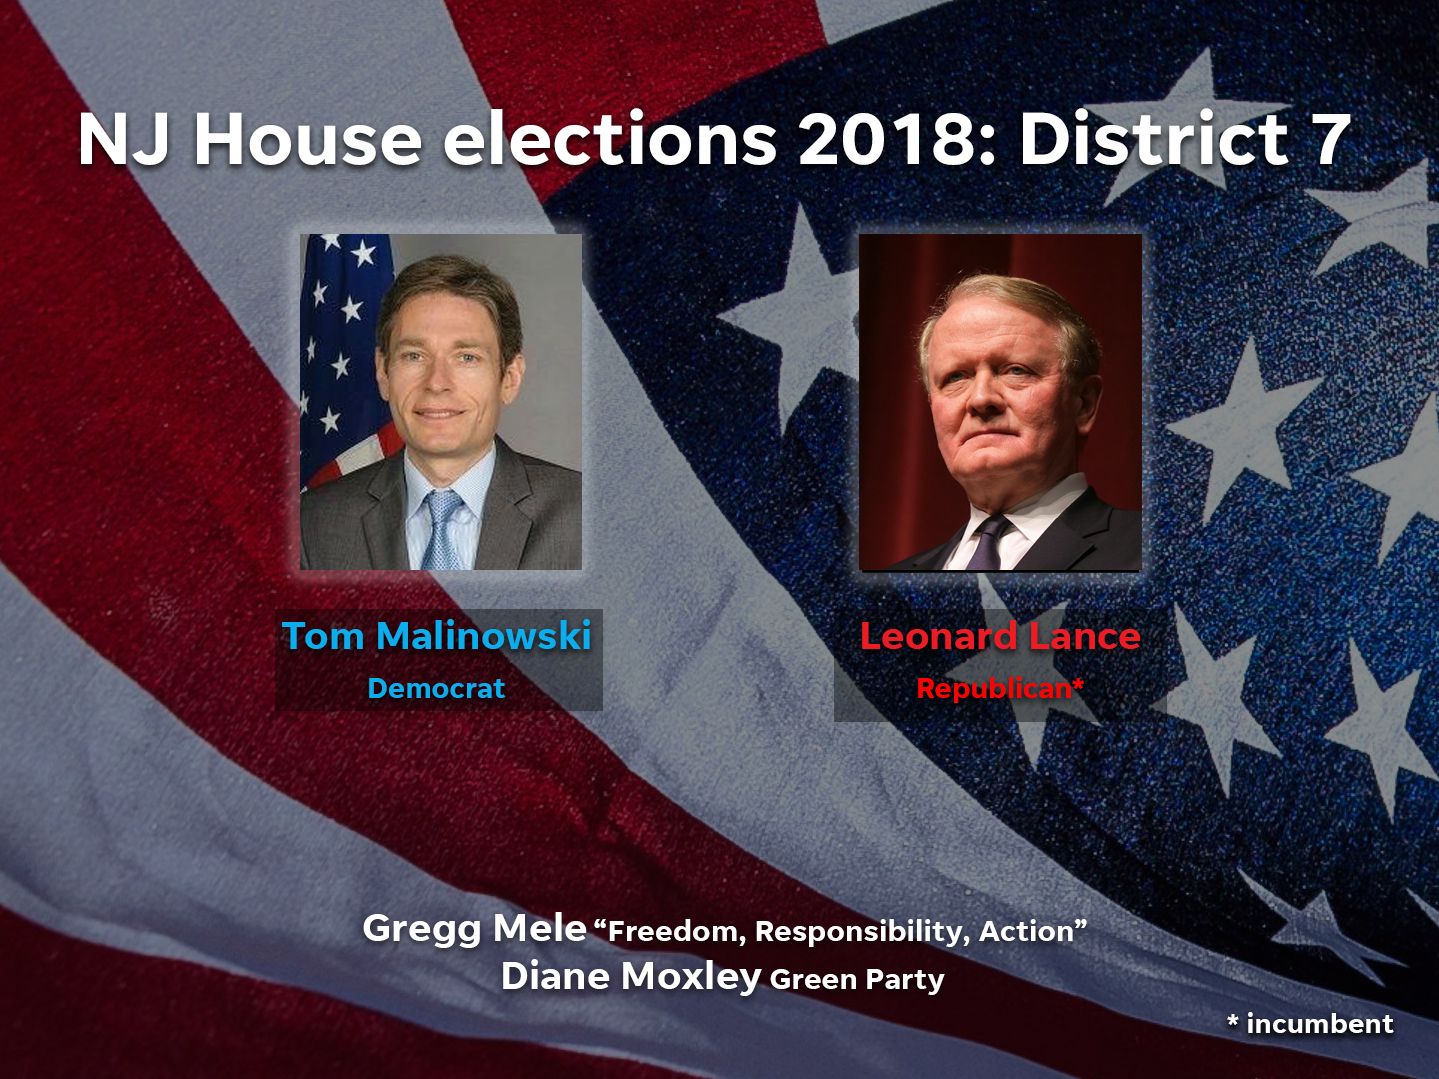 Tom Malinowski (D) and Leonard Lance (R) are among the candidates running in District 7 in the 2018 NJ House elections.